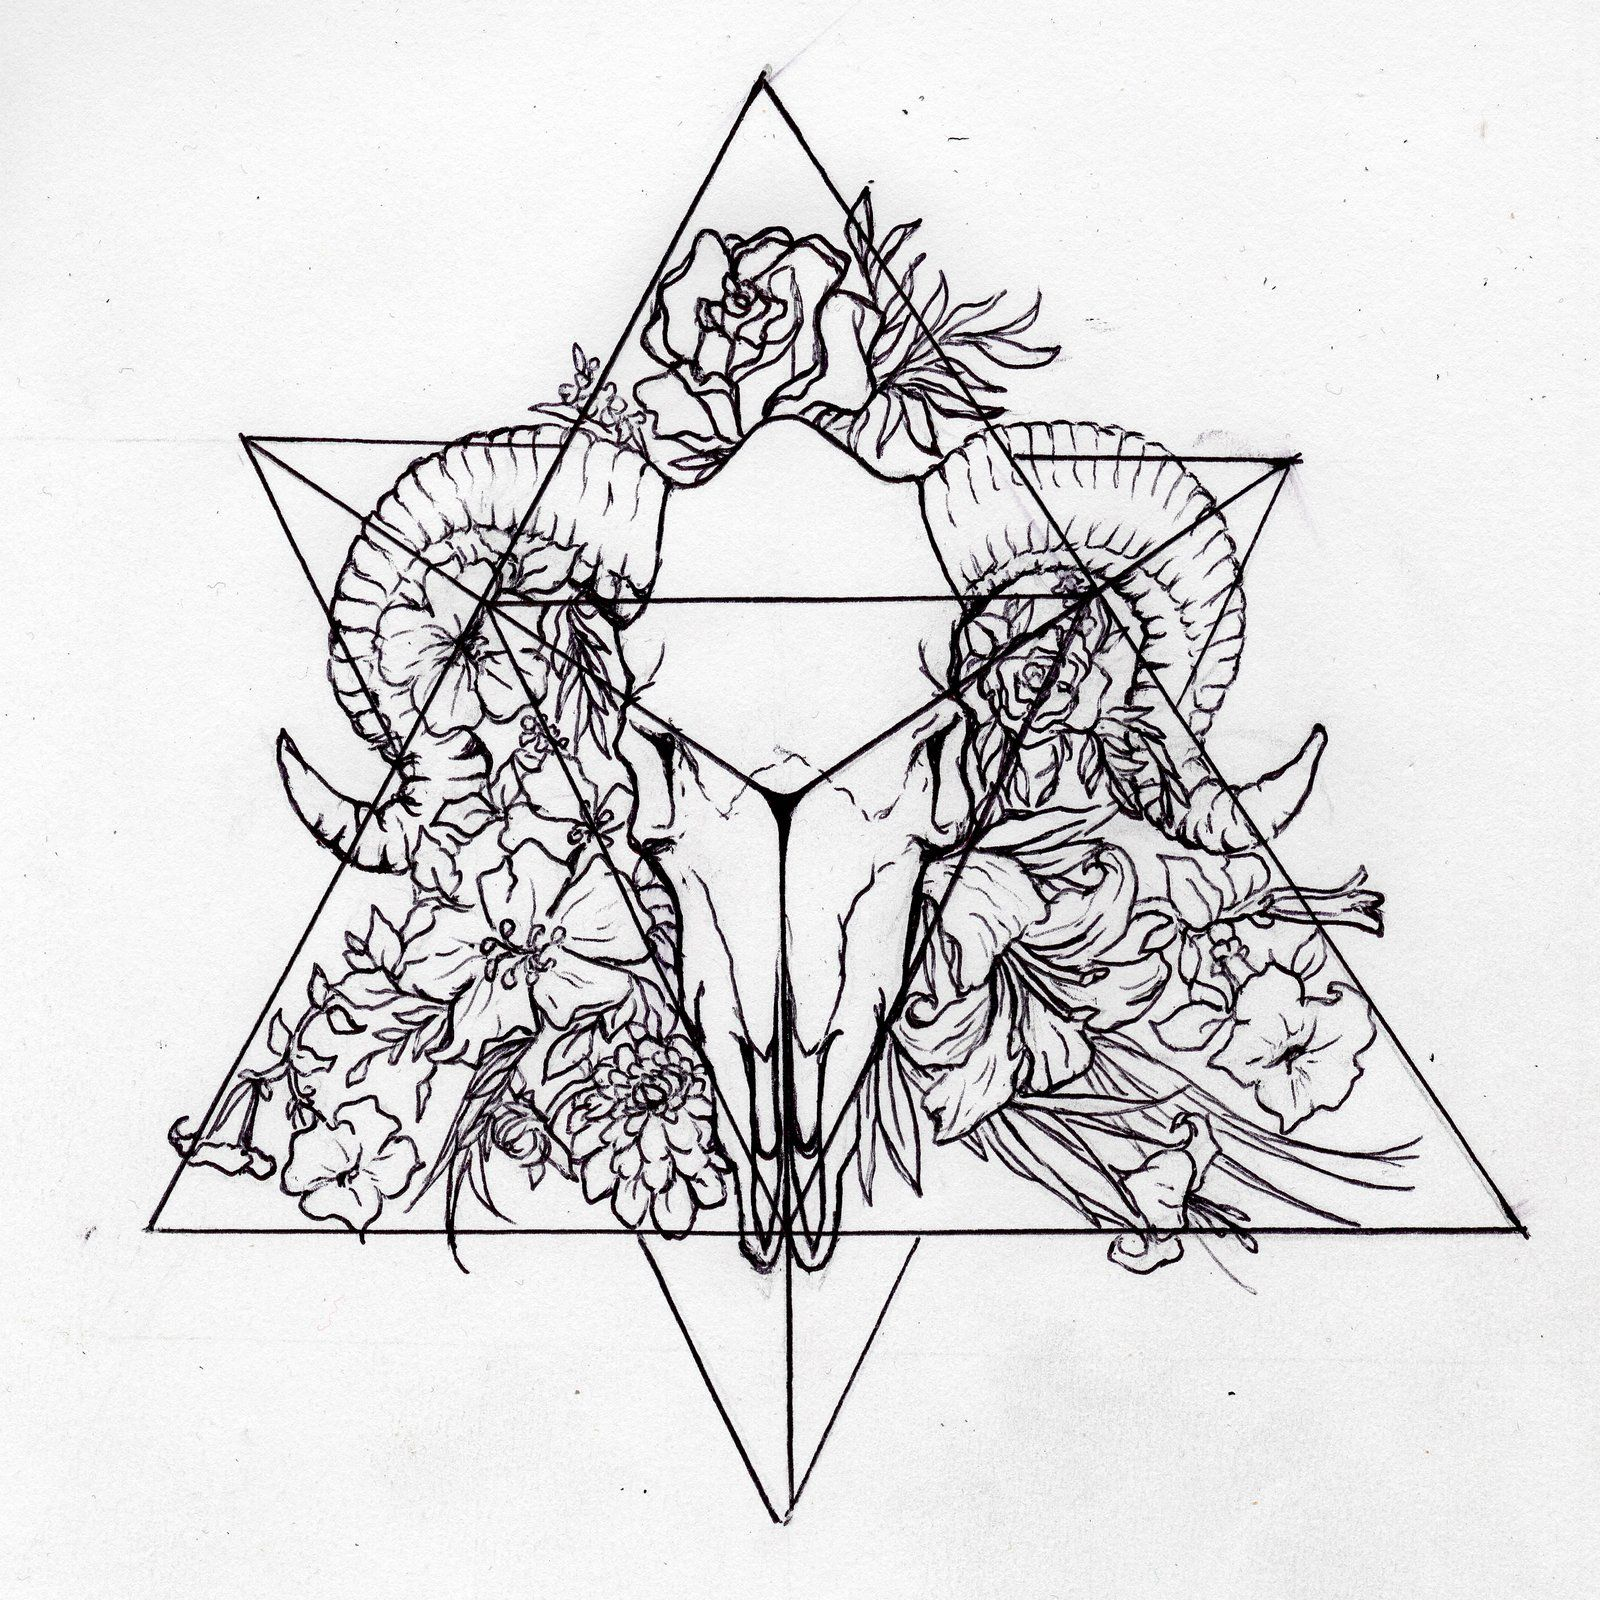 Tattoo Ideas Sketches: Tetrahedron (Personal Tattoo Design) By Morgan96k